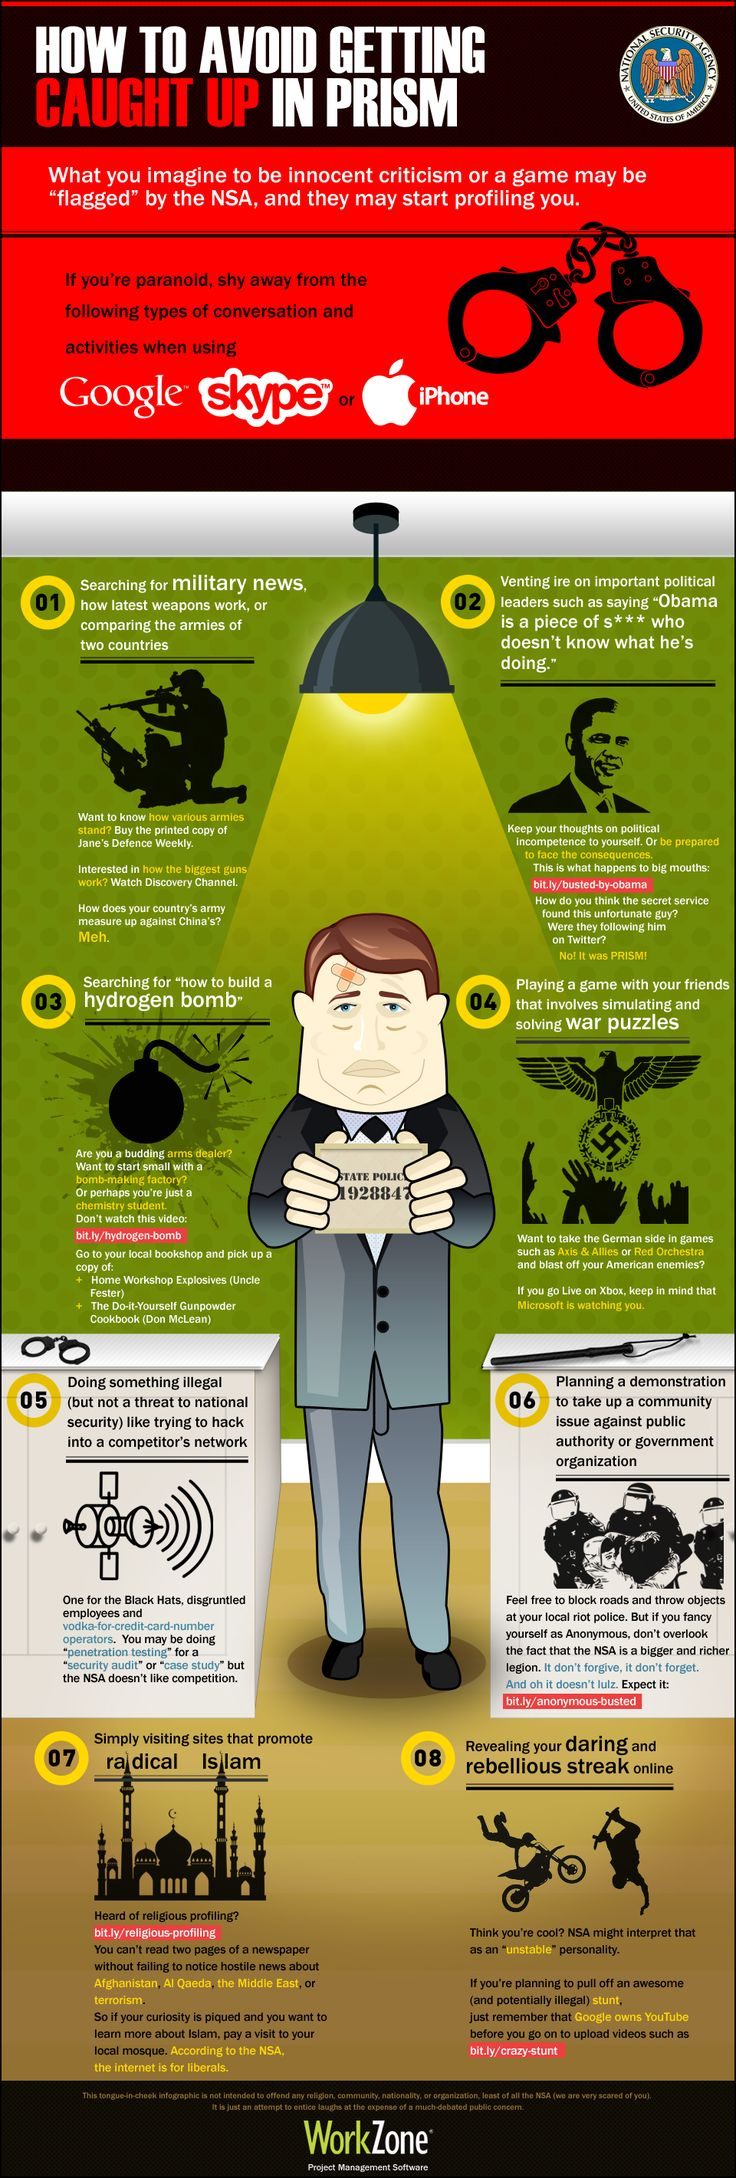 How To Avoid Getting Caught Up In Prism #Infographic #Humour